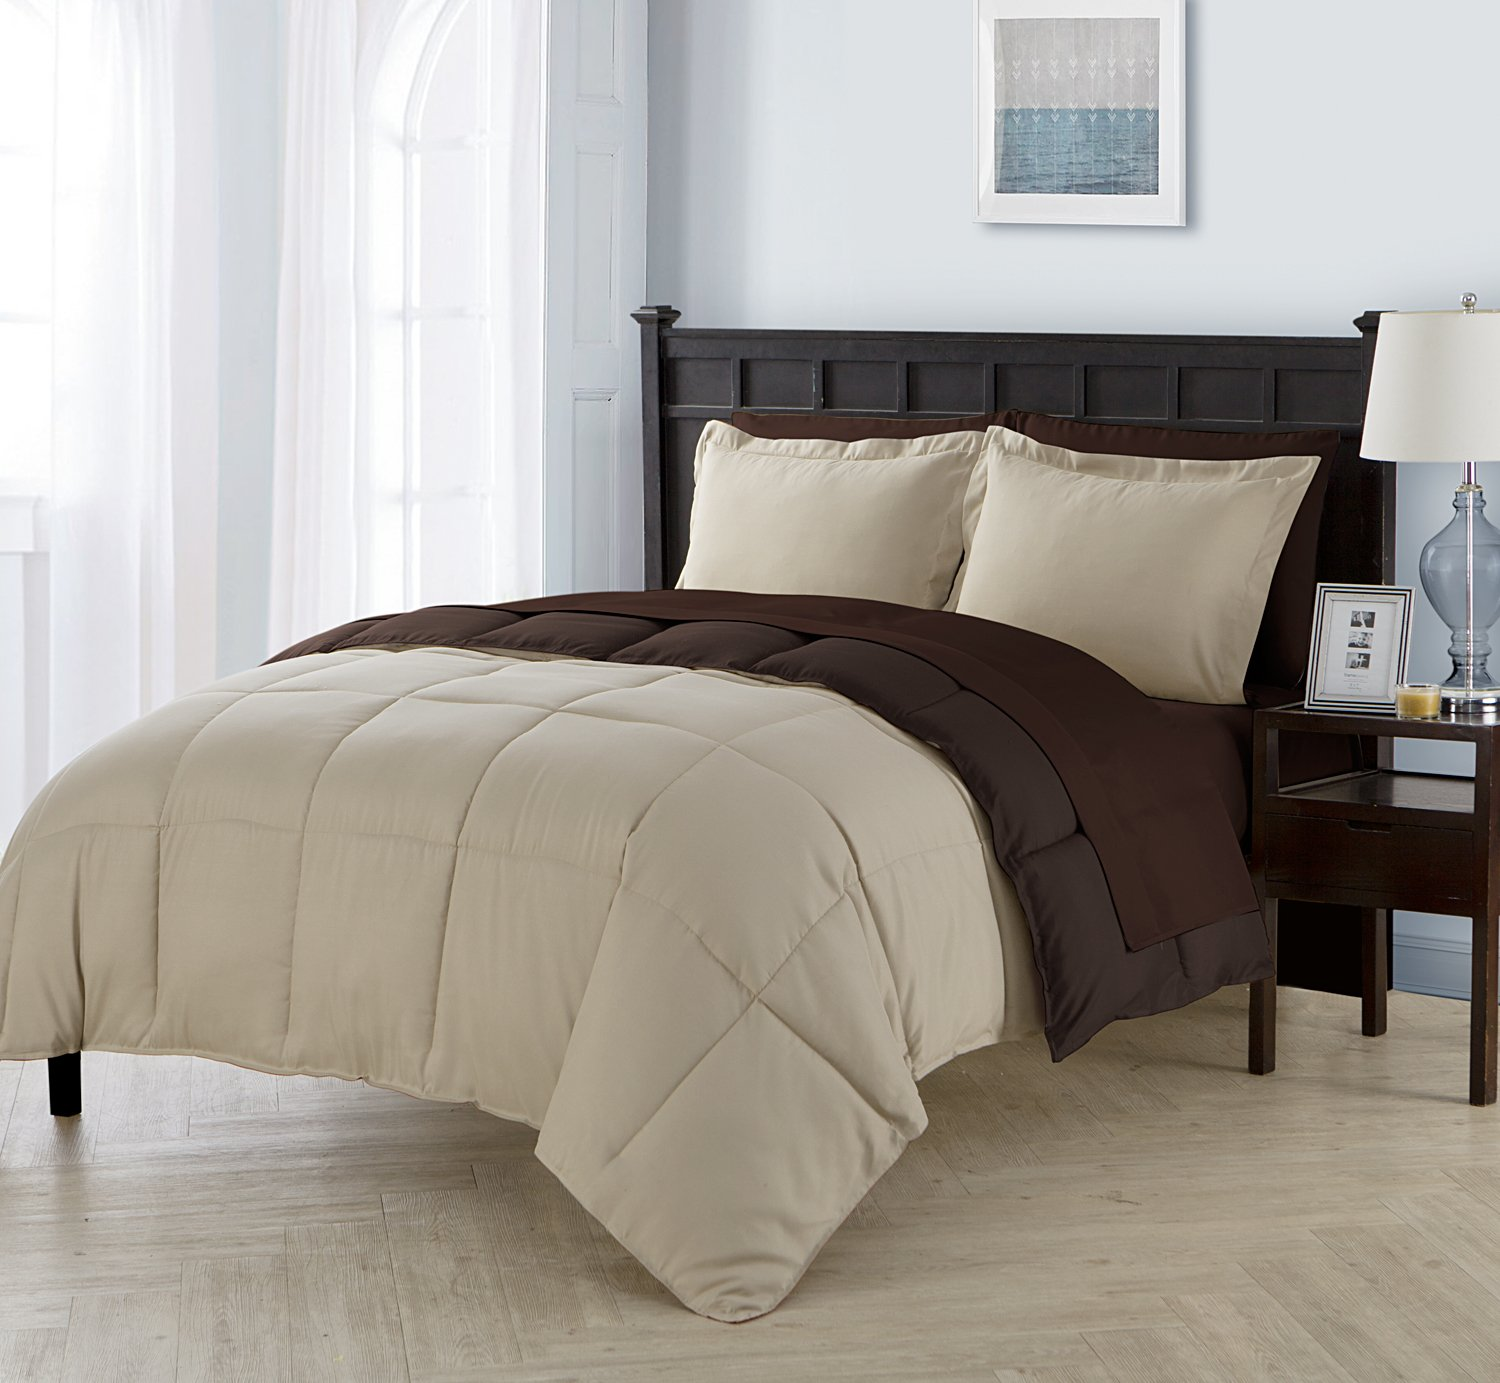 Full Size Complete BED-IN-A-BAG Reversible in Taupe / Brown Contrasting Colors 7 Pc Set w/ Sheets